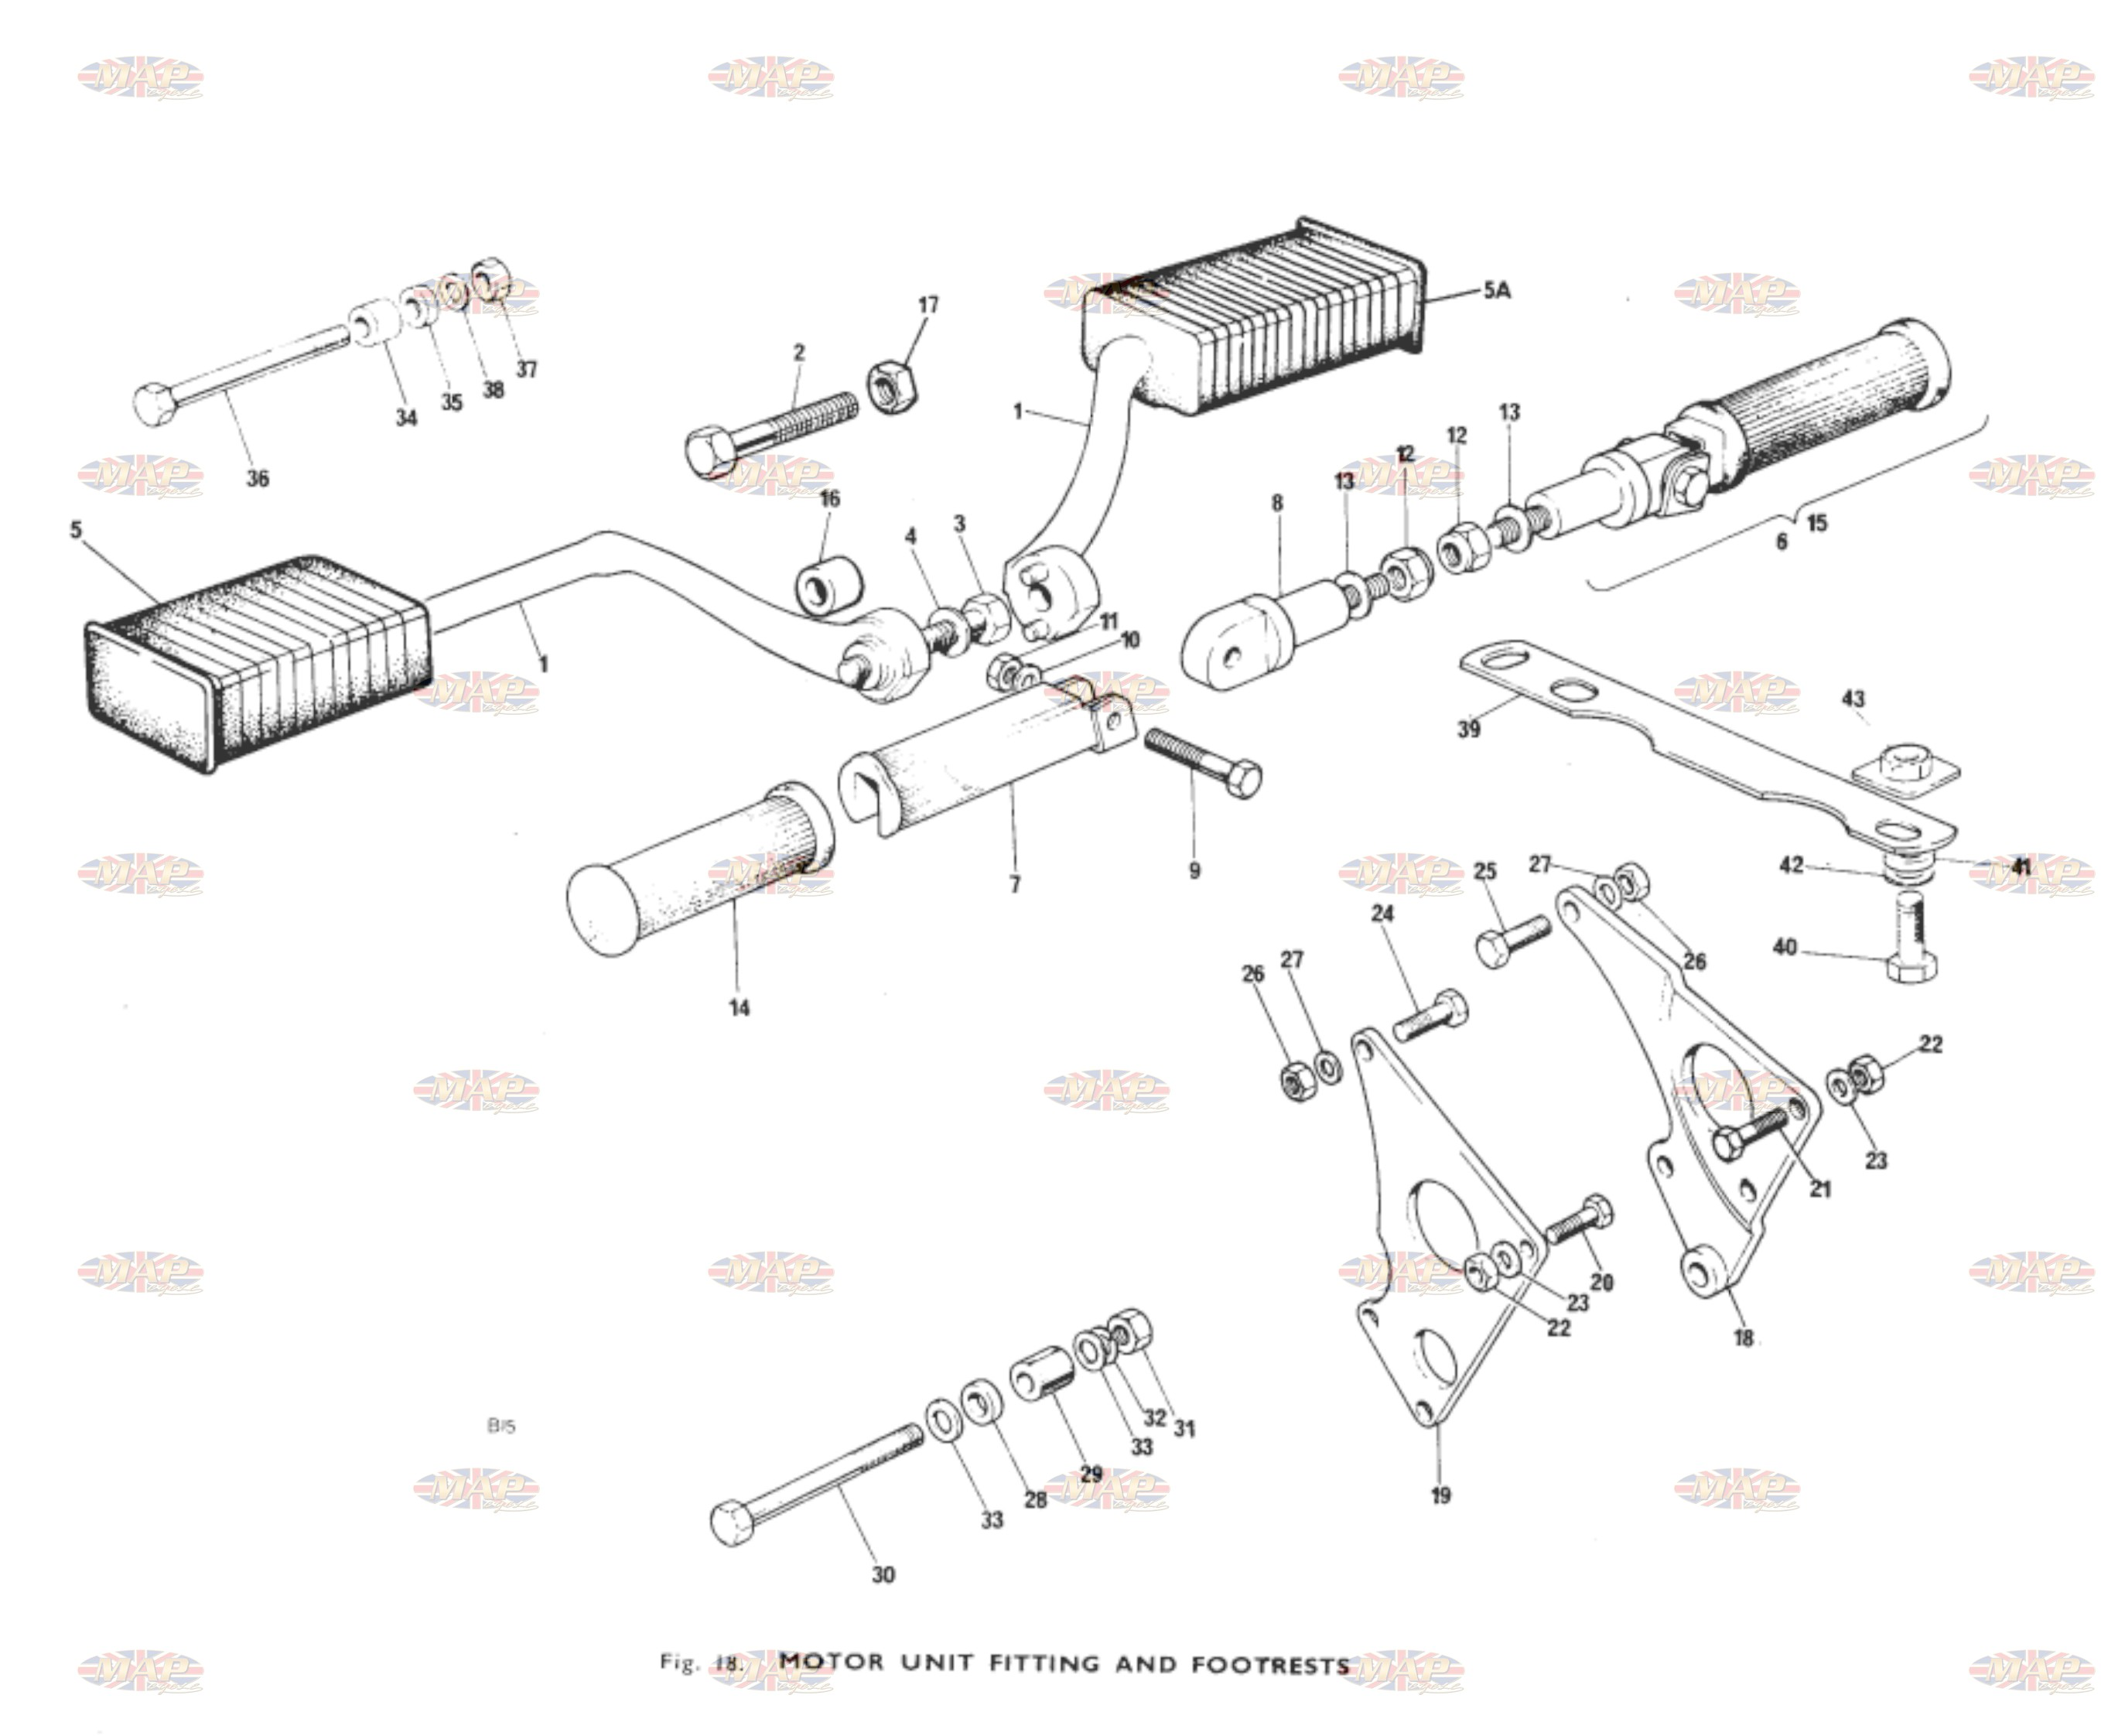 Engine Mounts Footrests Mounting Diagram 1979 Triumph T140